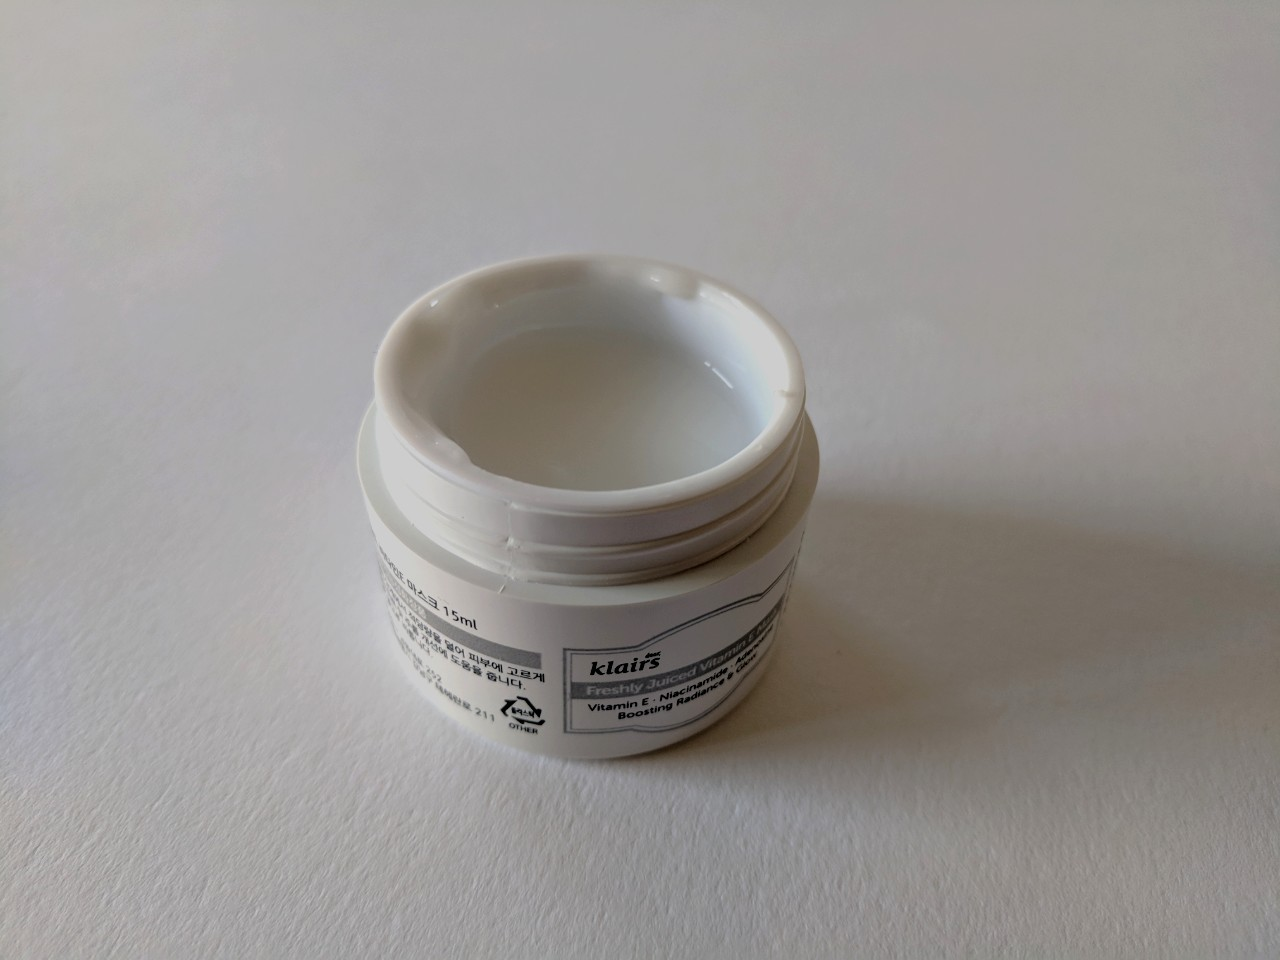 Klairs Freshly Juiced Vitamin E Mask pot